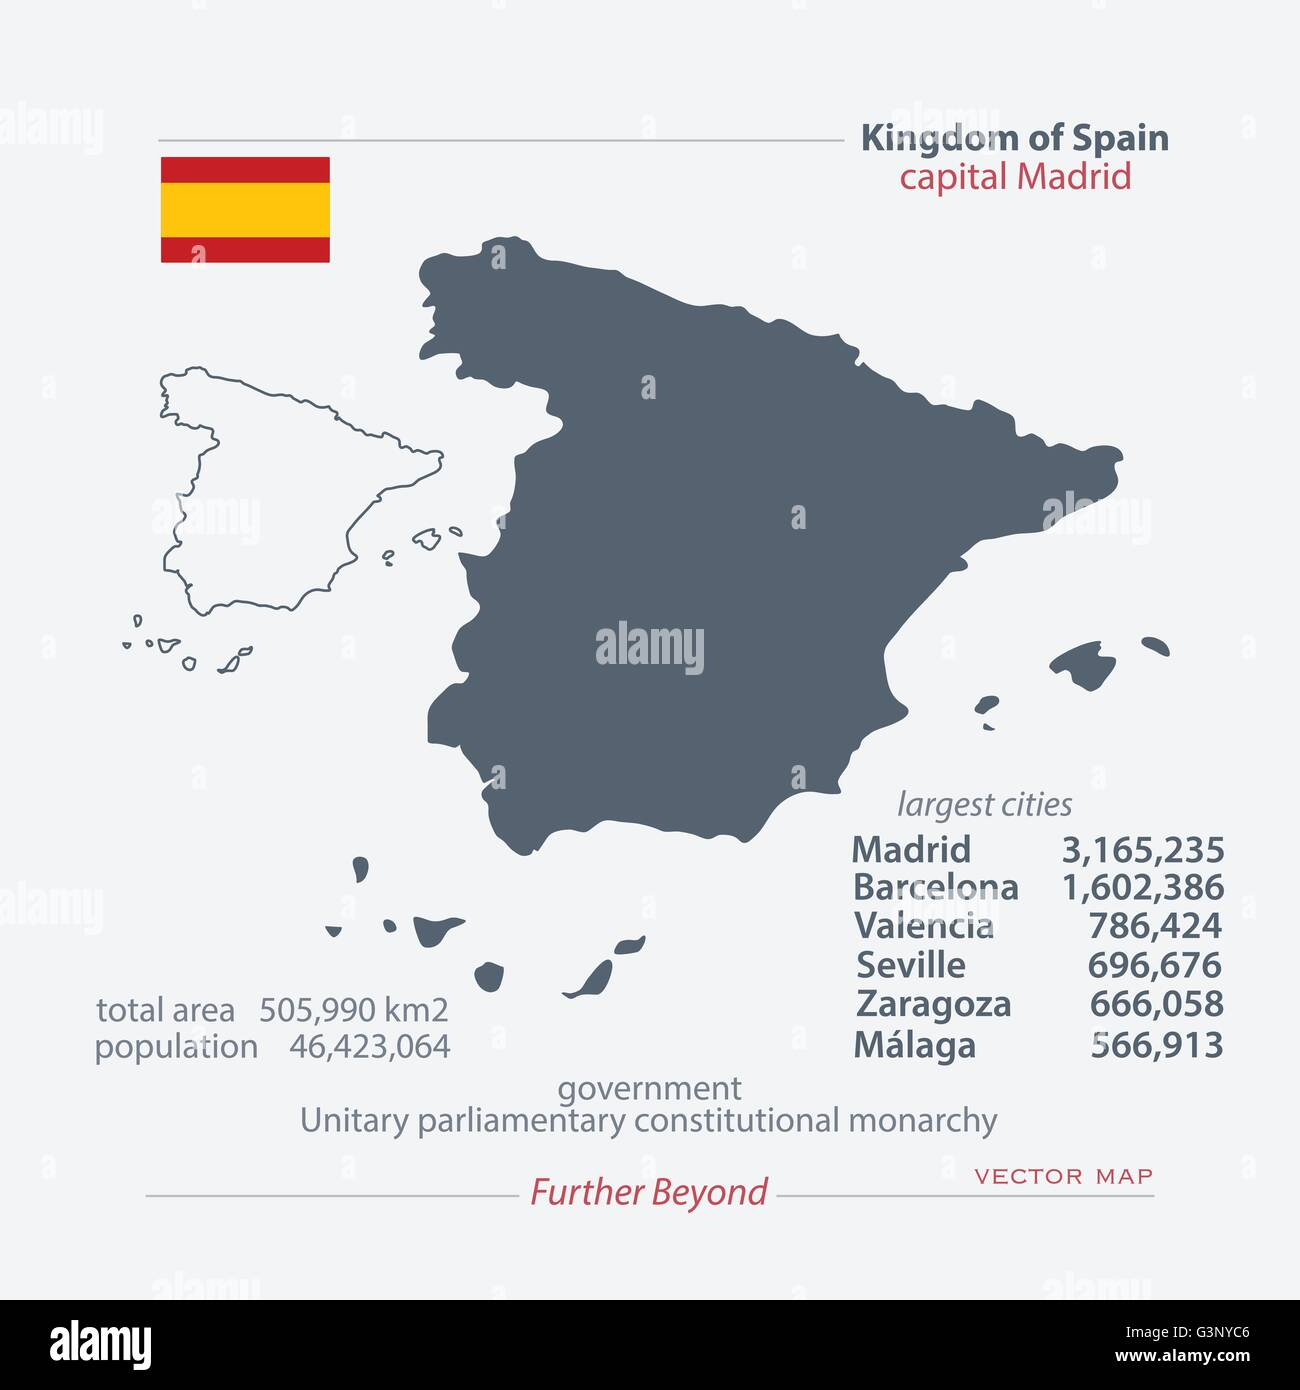 Kingdom of Spain isolated maps and official flag icon. vector ... on india map icon, uk map icon, italy map icon, africa map icon, travel map icon, emea map icon, usa map icon, china map icon, russia map icon, mexico map icon, canada map icon, gps map icon, singapore map icon, brazil map icon, japan map icon, hk map icon, pa map icon, asia map icon, regional map icon, europe map icon,